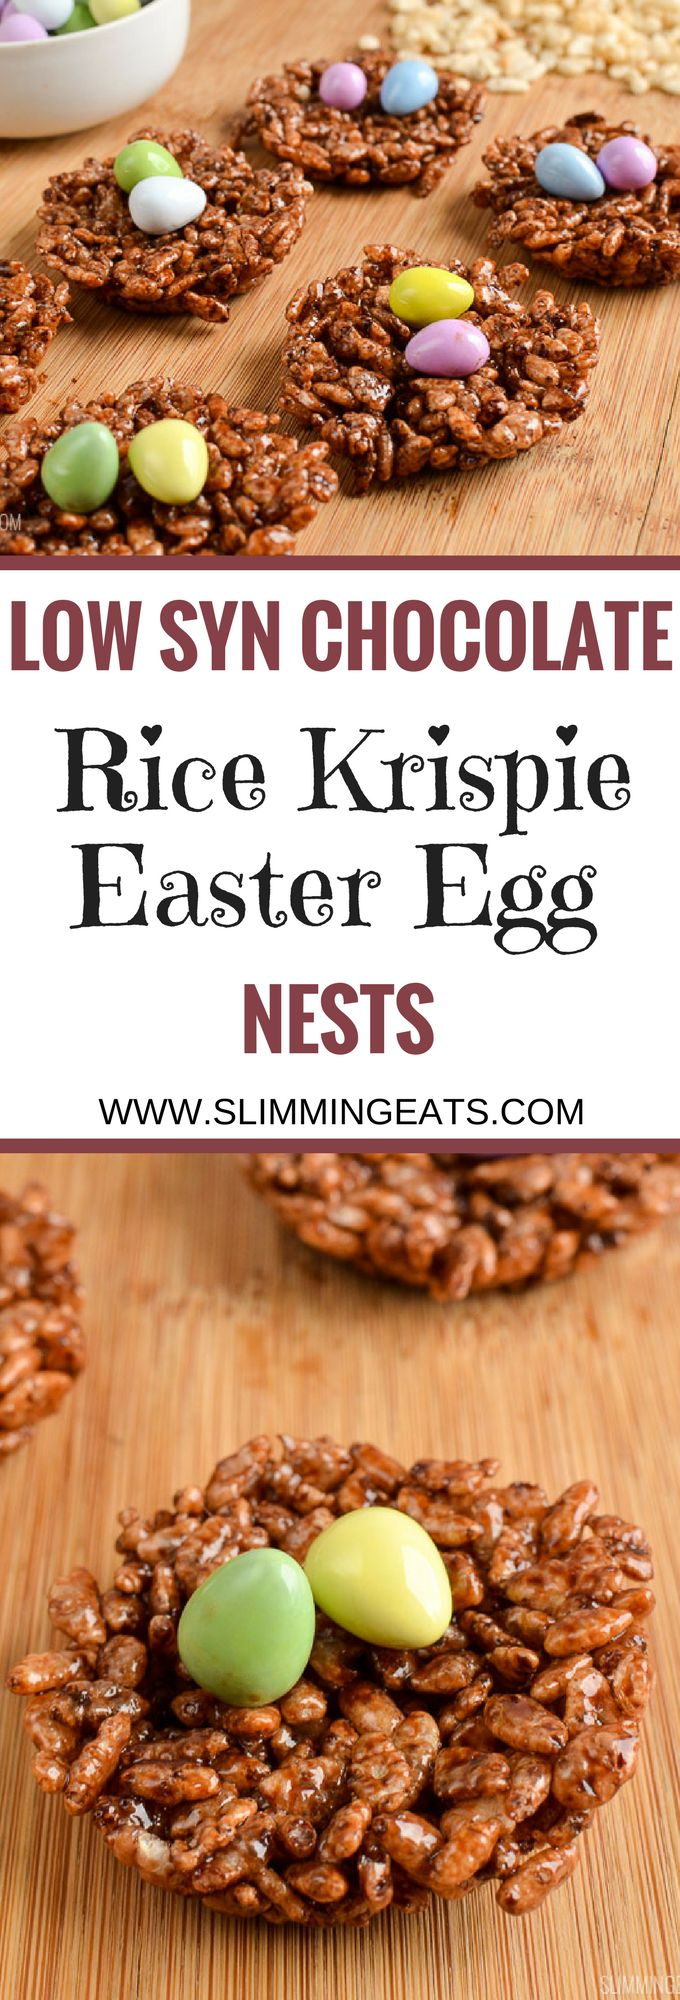 Slimming Eats Low Syn Chocolate Rice Krispie Easter Egg Nests - vegetarian, Slimming World and Weight Watchers friendly